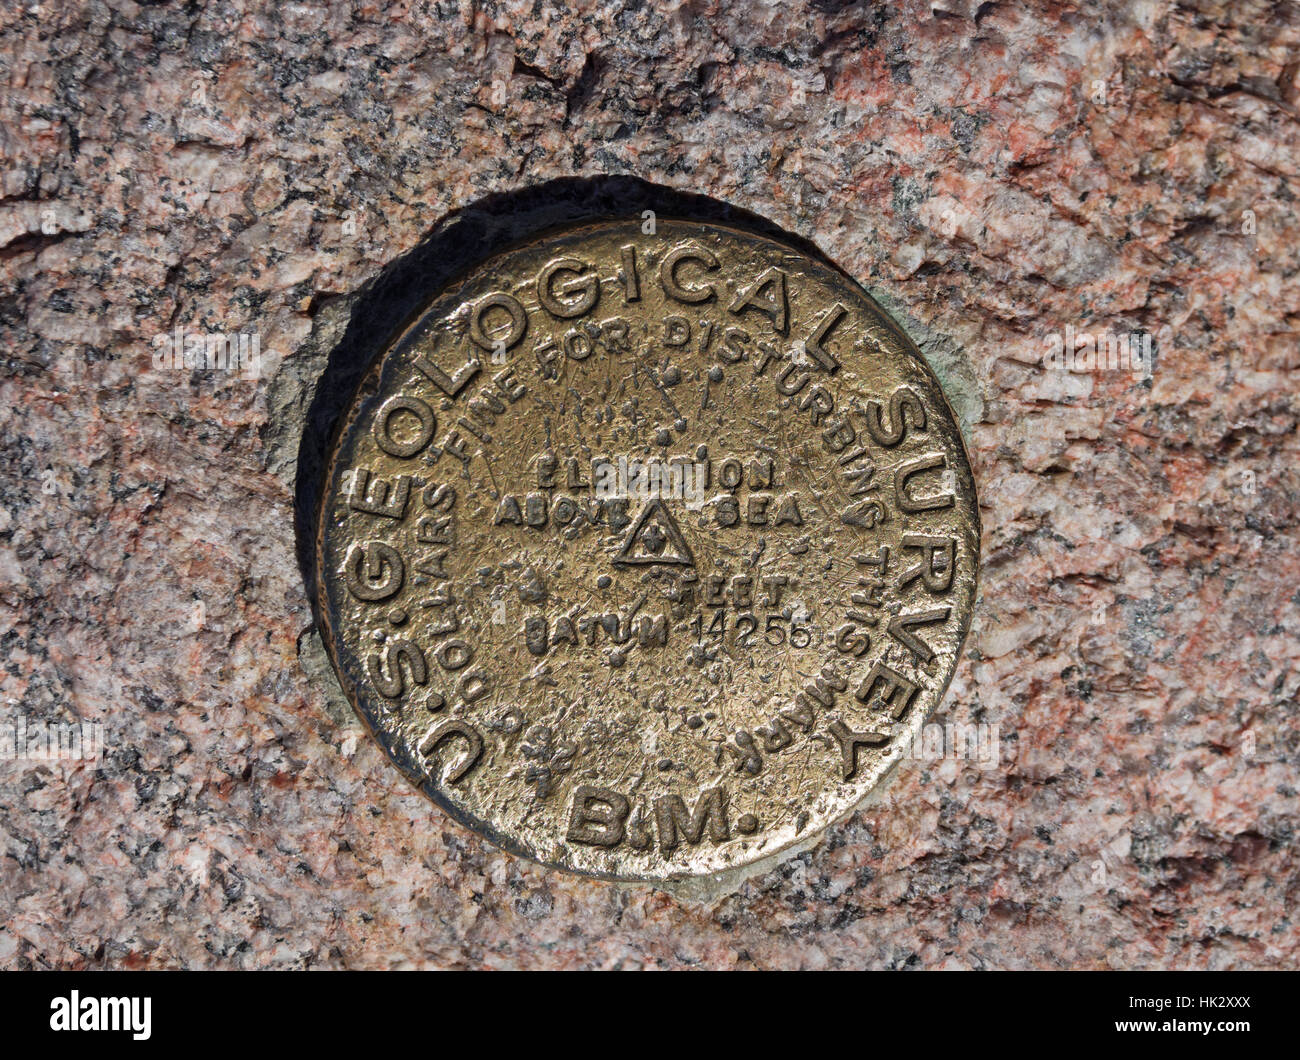 Benchmark on the 14255 foot summit of Longs Peak in Rocky Mountain National Park - Stock Image